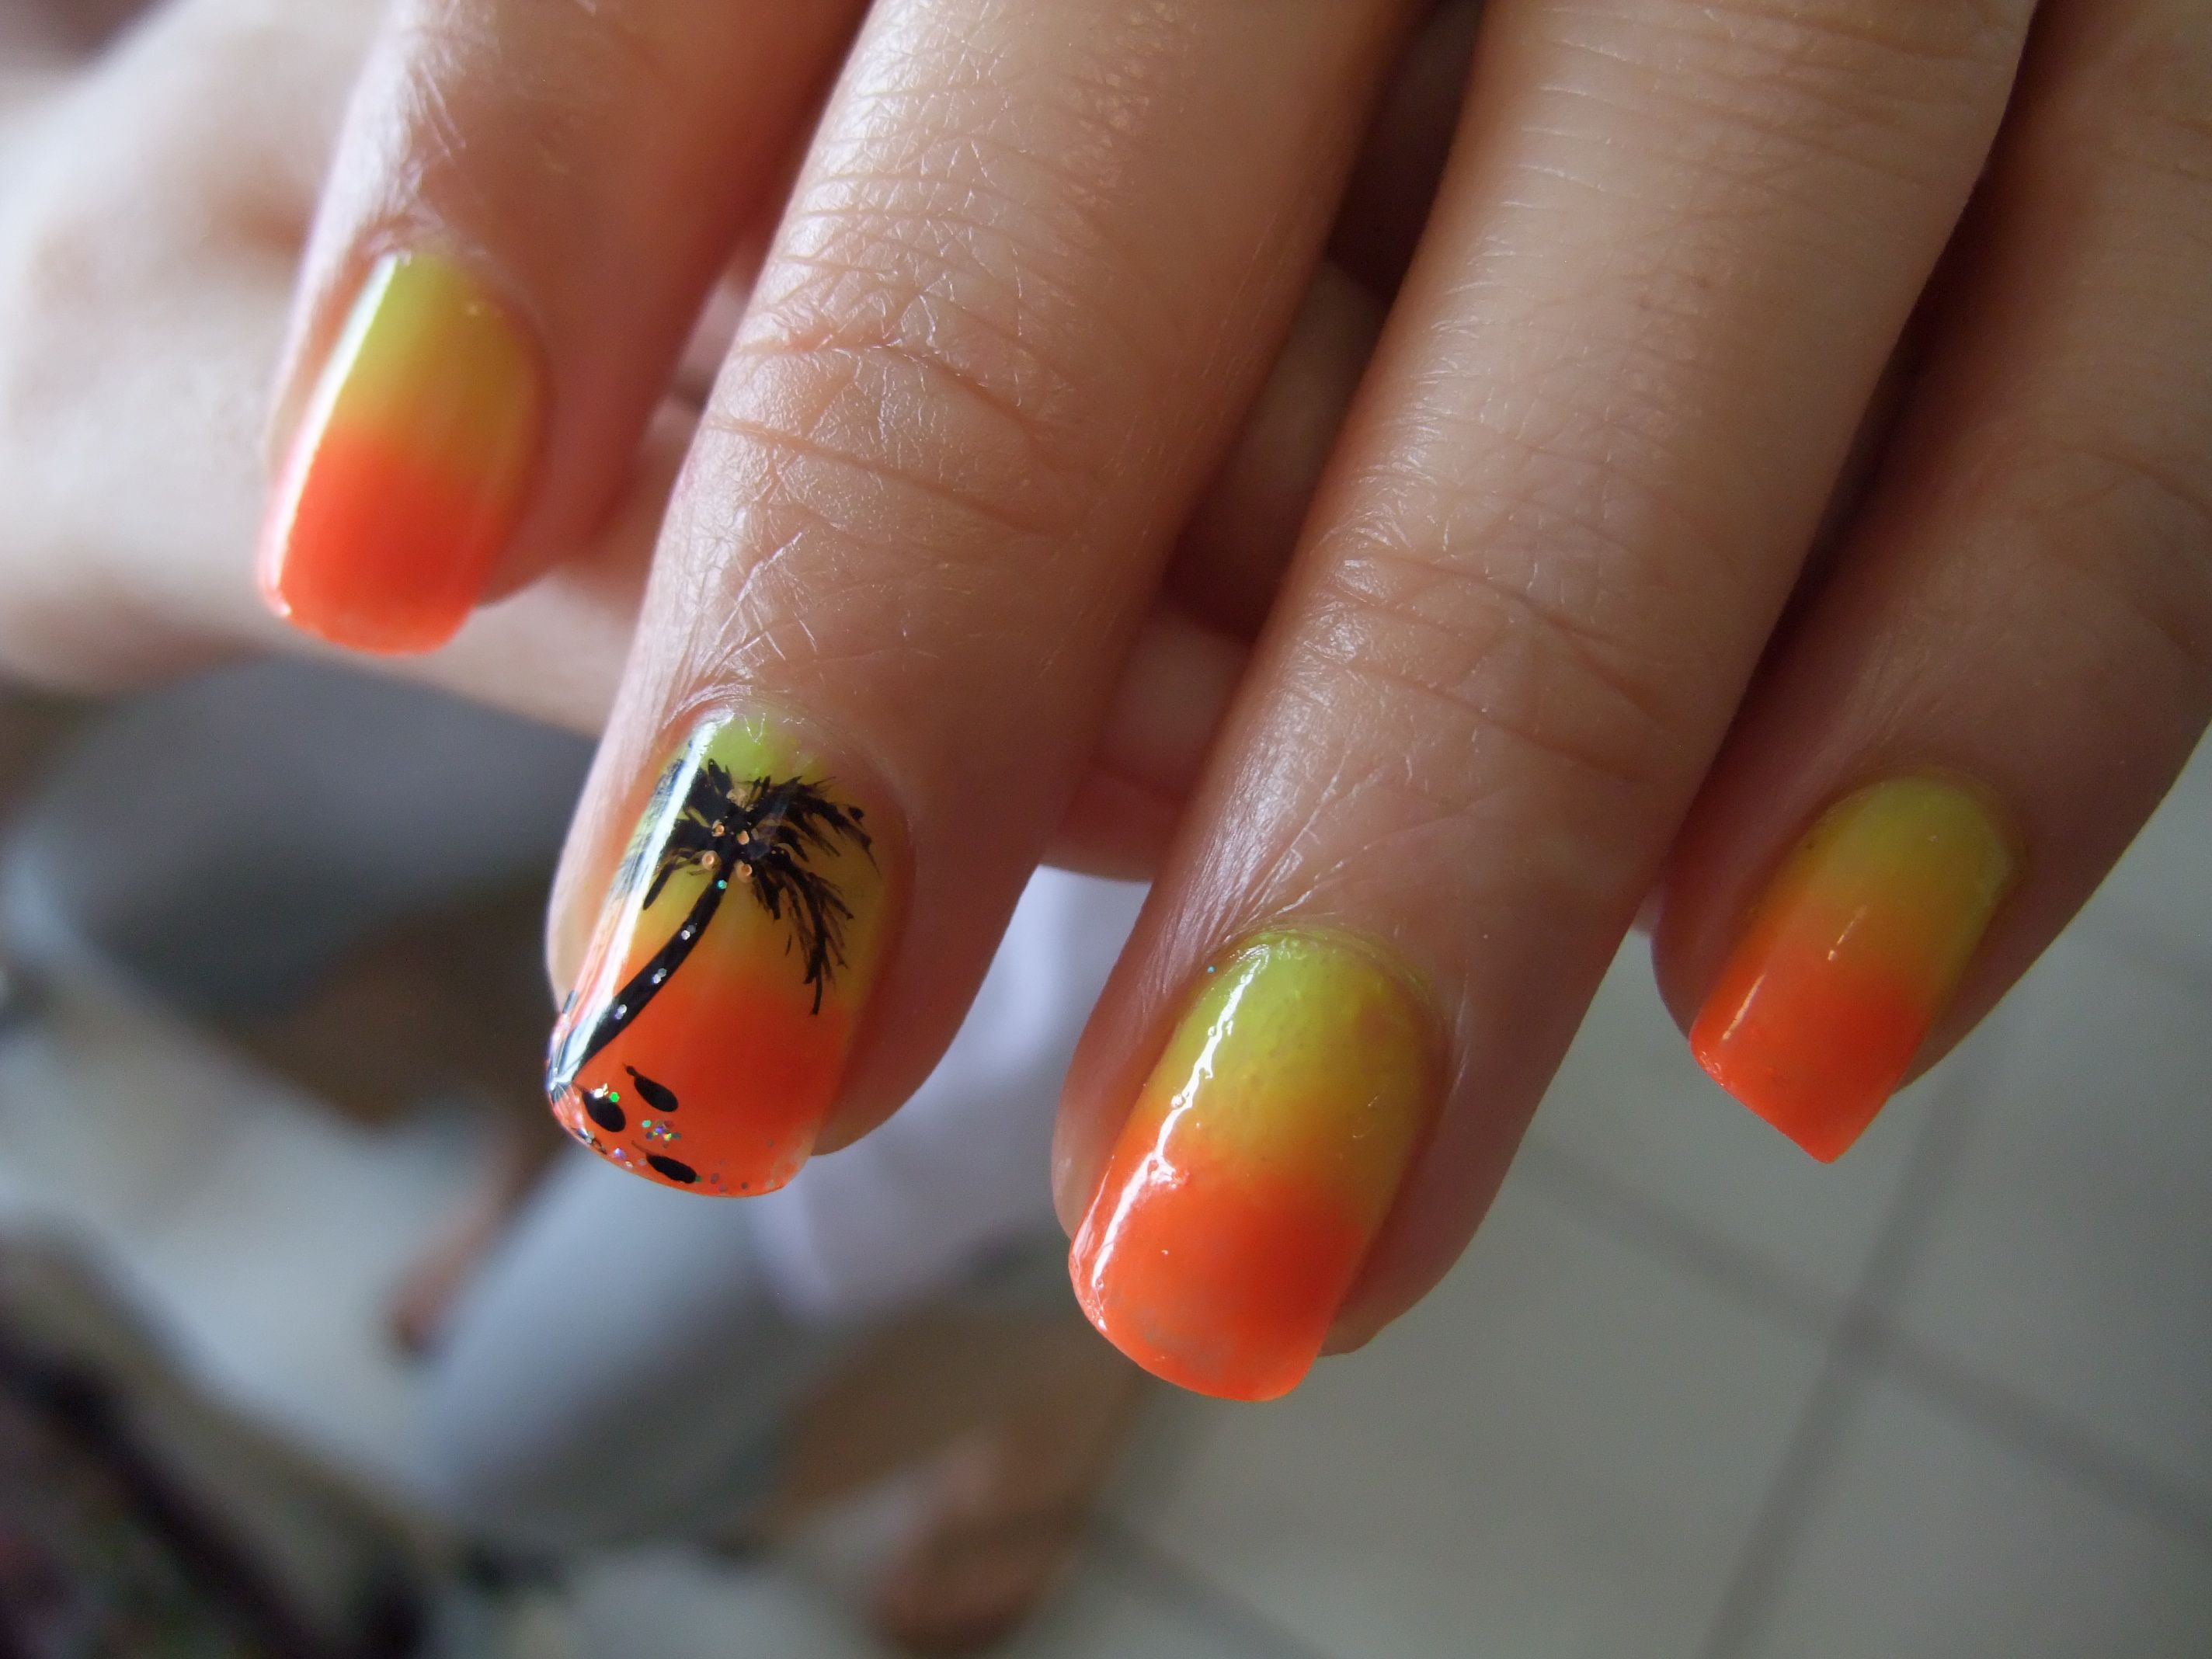 We are specialize nail art design. Please call at 949-380-8808 for make an appointment. You will love the great result we offer.